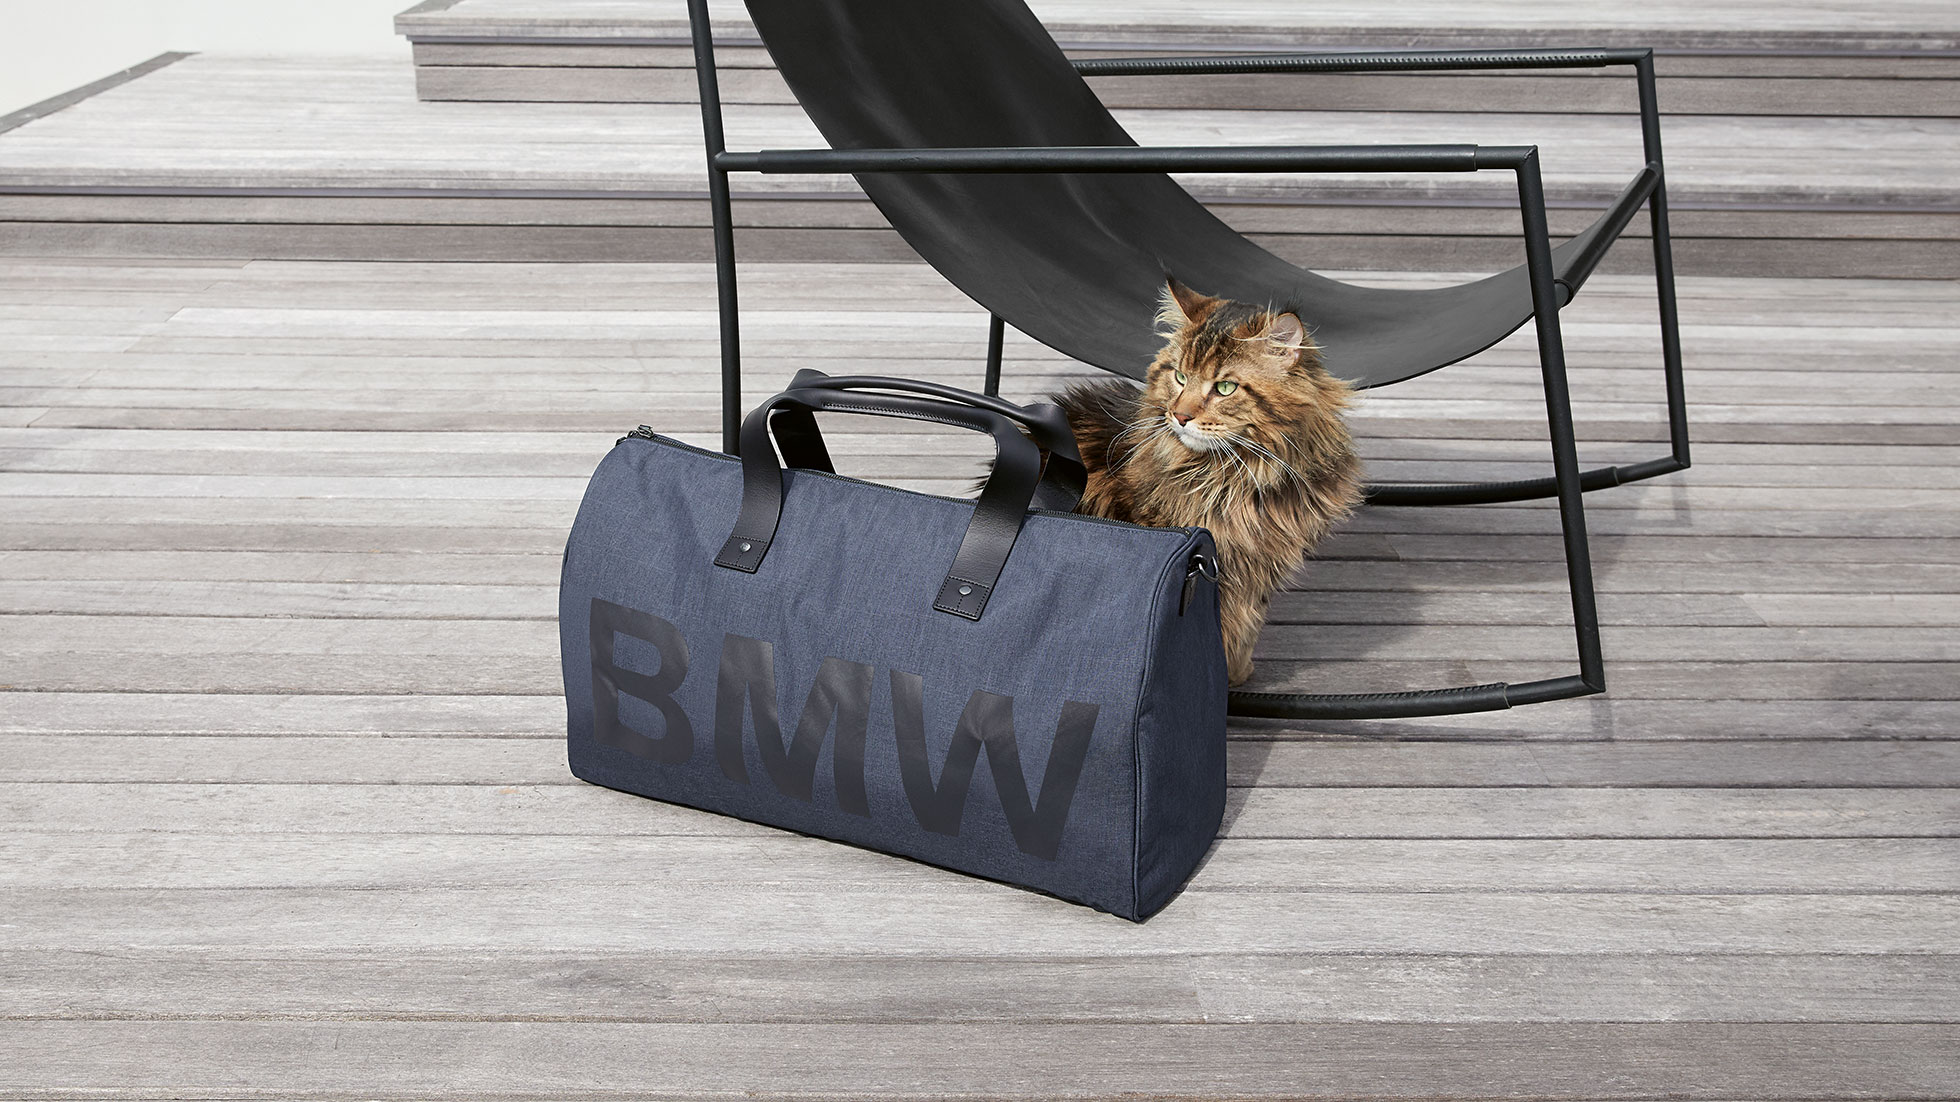 The picture shows the BMW Modern Duffle Bag in front of a sitting cat and a chair.